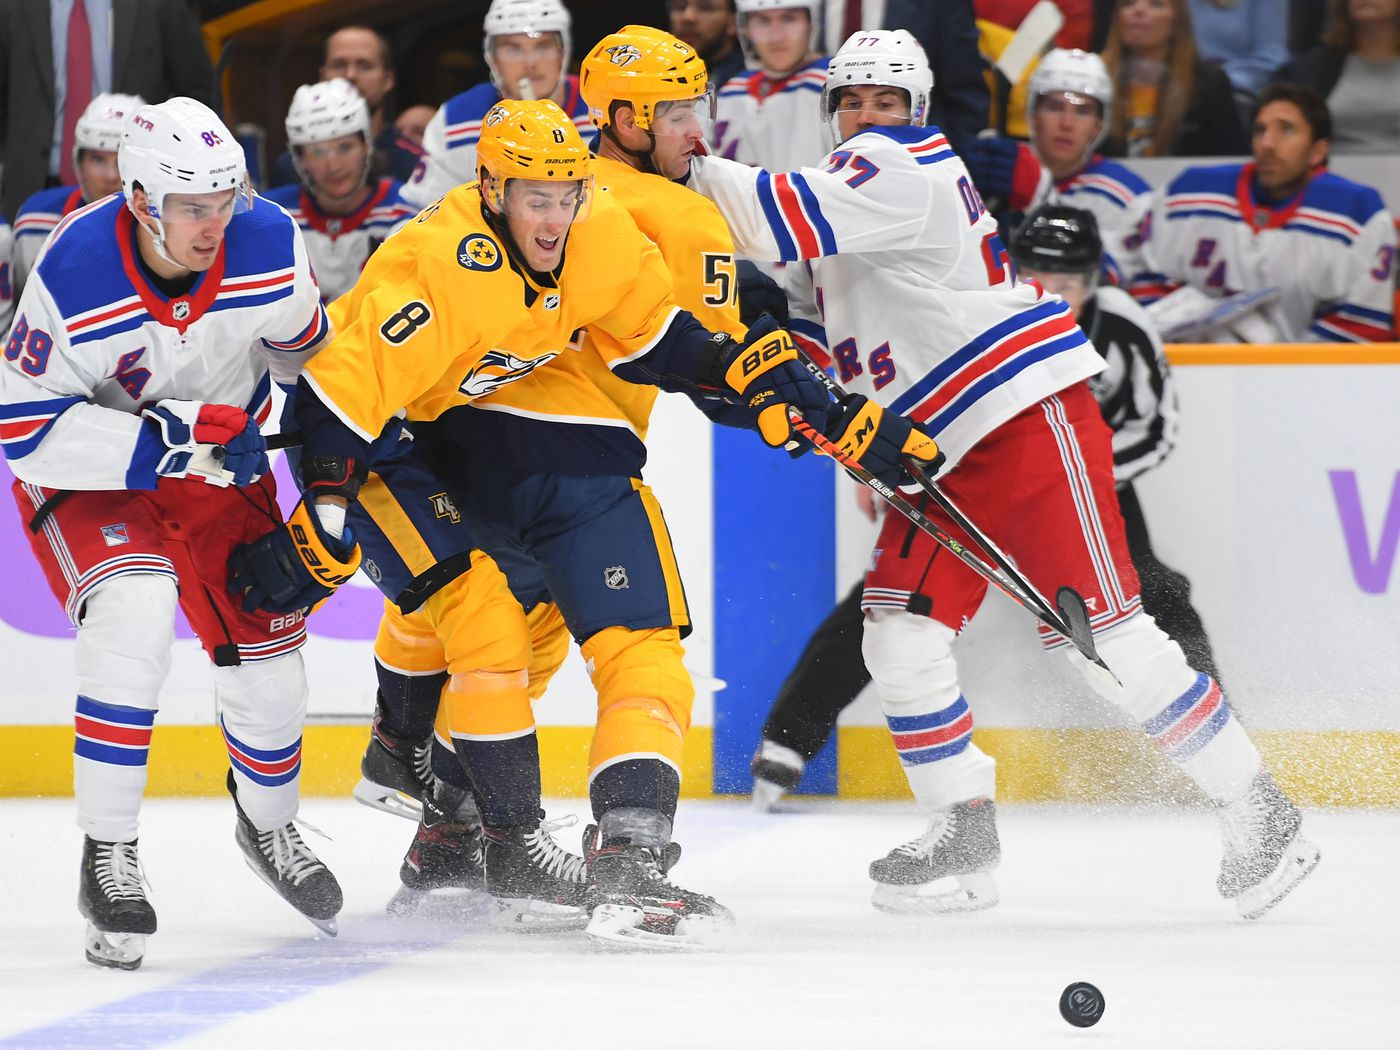 A Statistical Look At The Nashville Predators Kyle Turris On The Forecheck